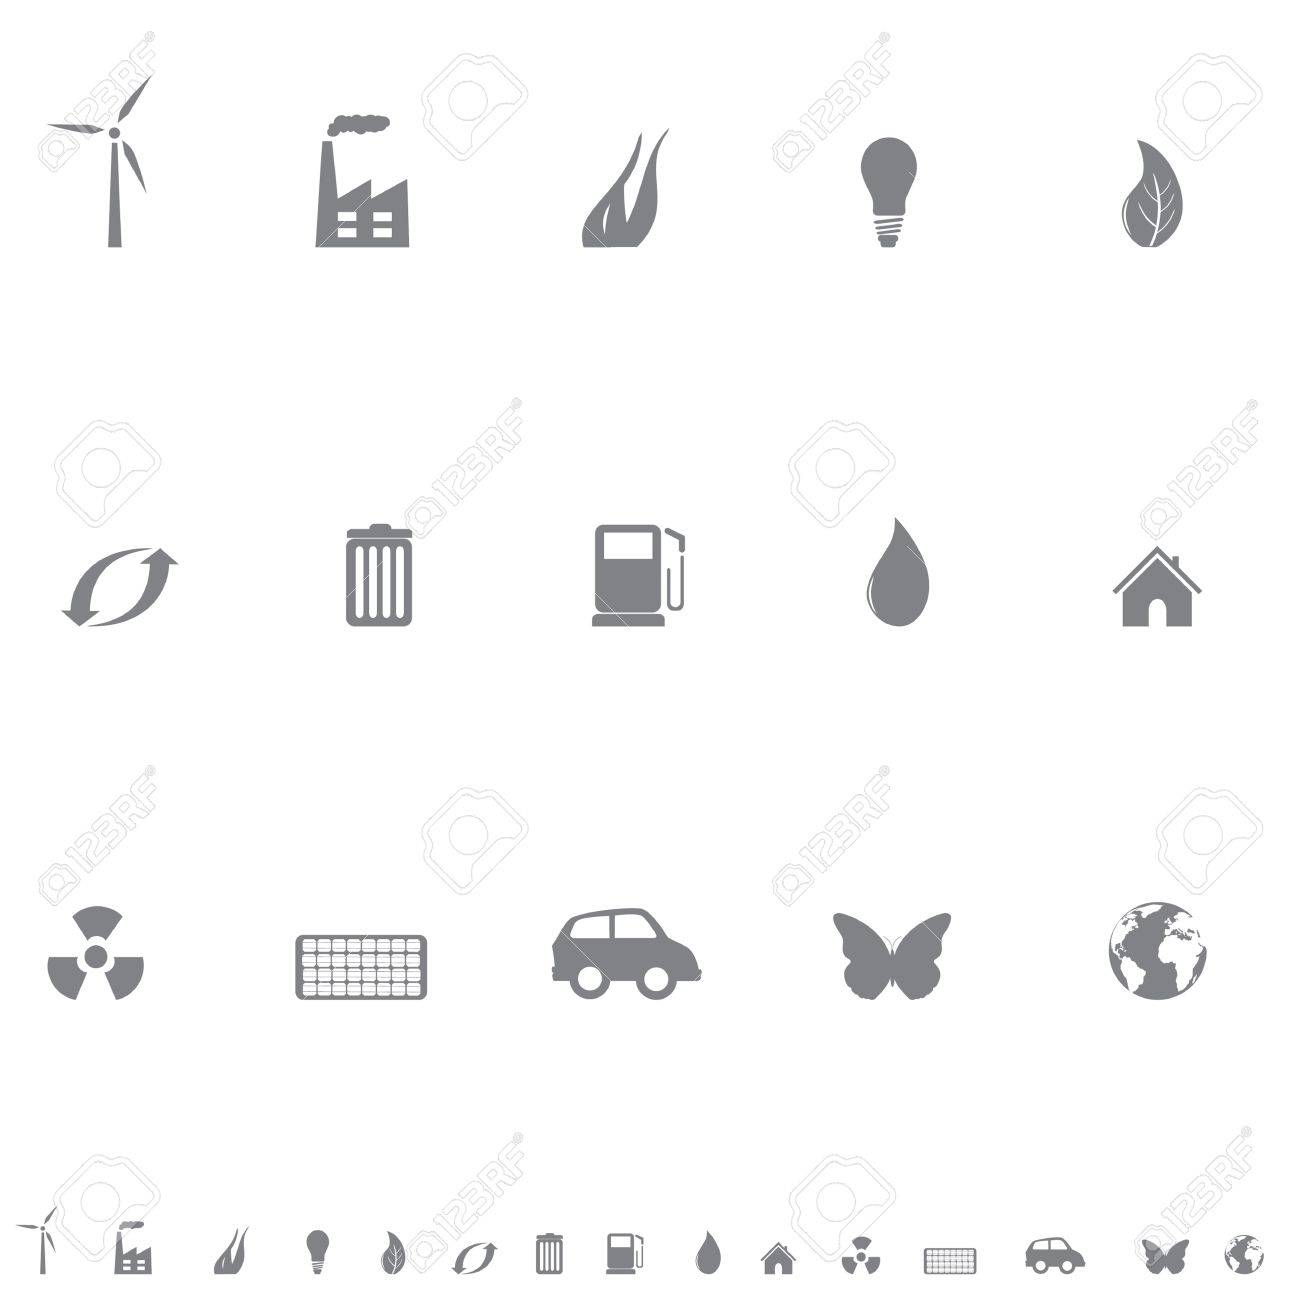 Environment friendly symbols icon set Stock Vector - 12305273